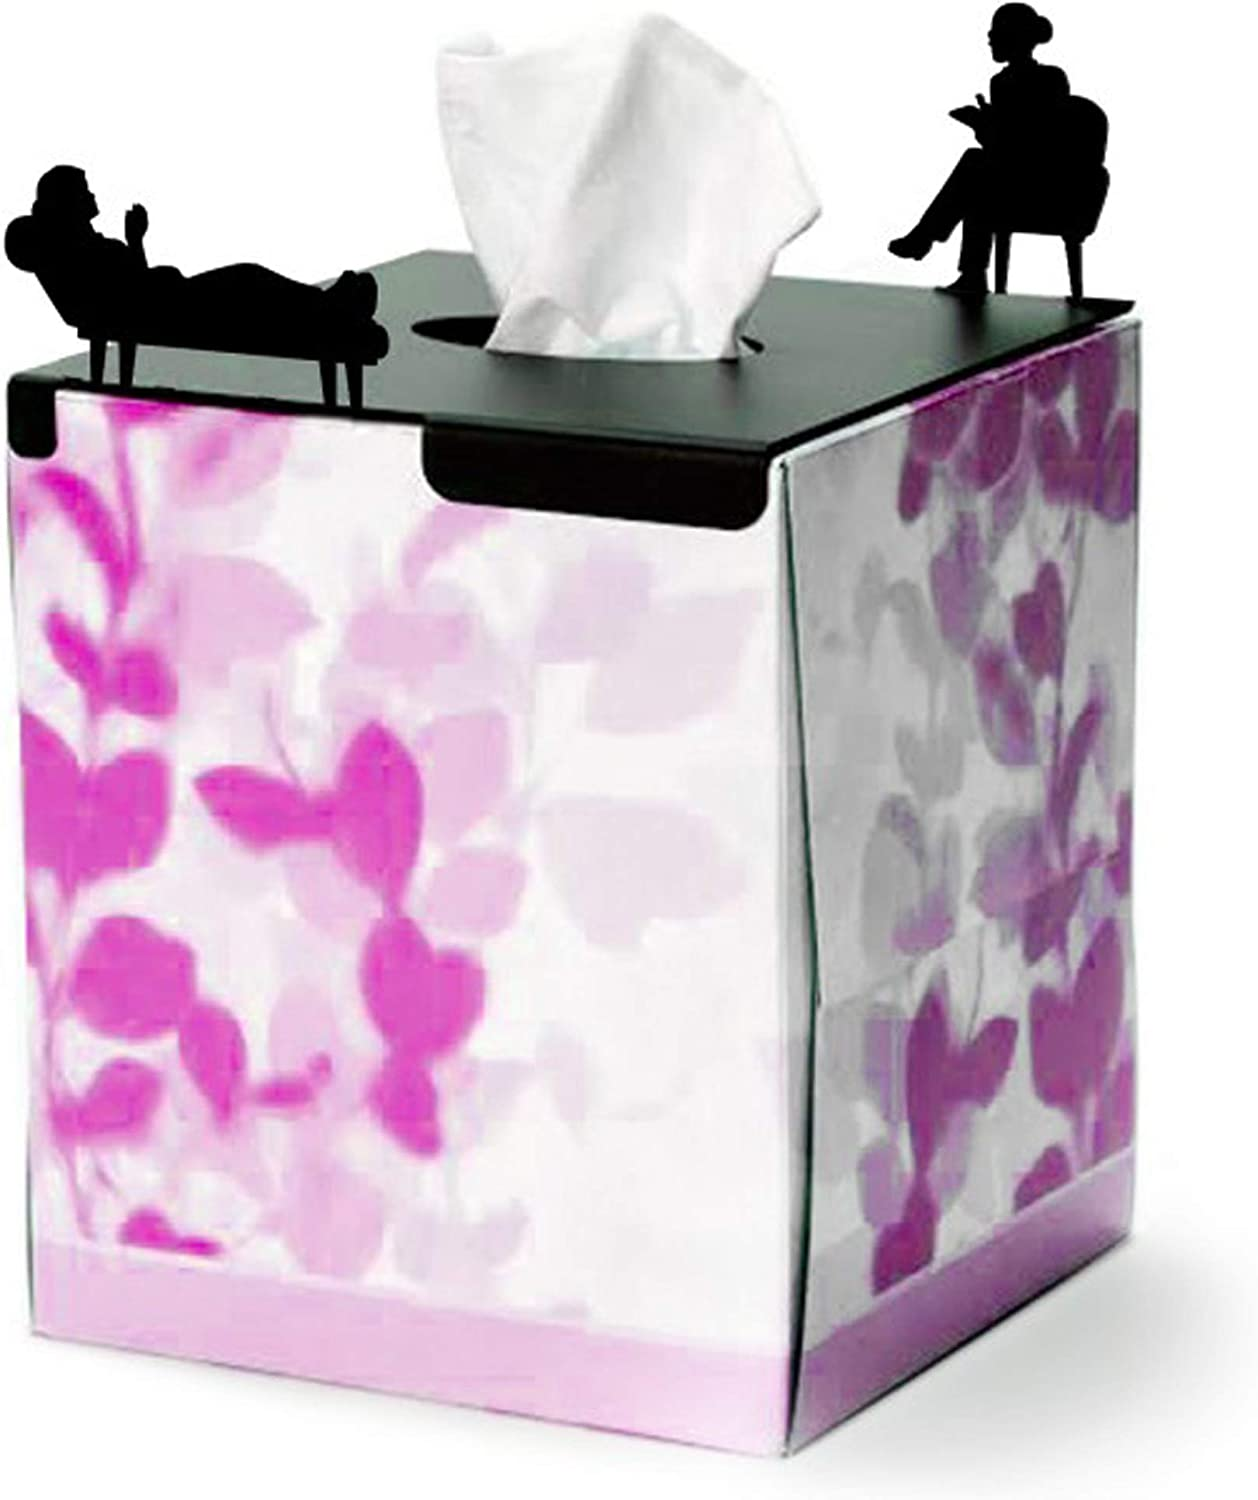 Tissue Box Cover Square for Tissues Cube Box In Her Treatment - Tissue Holder for Psychologist Gifts, Thank You Gifts For Women Therapist Office Decor, Private Practice & Office Decoration